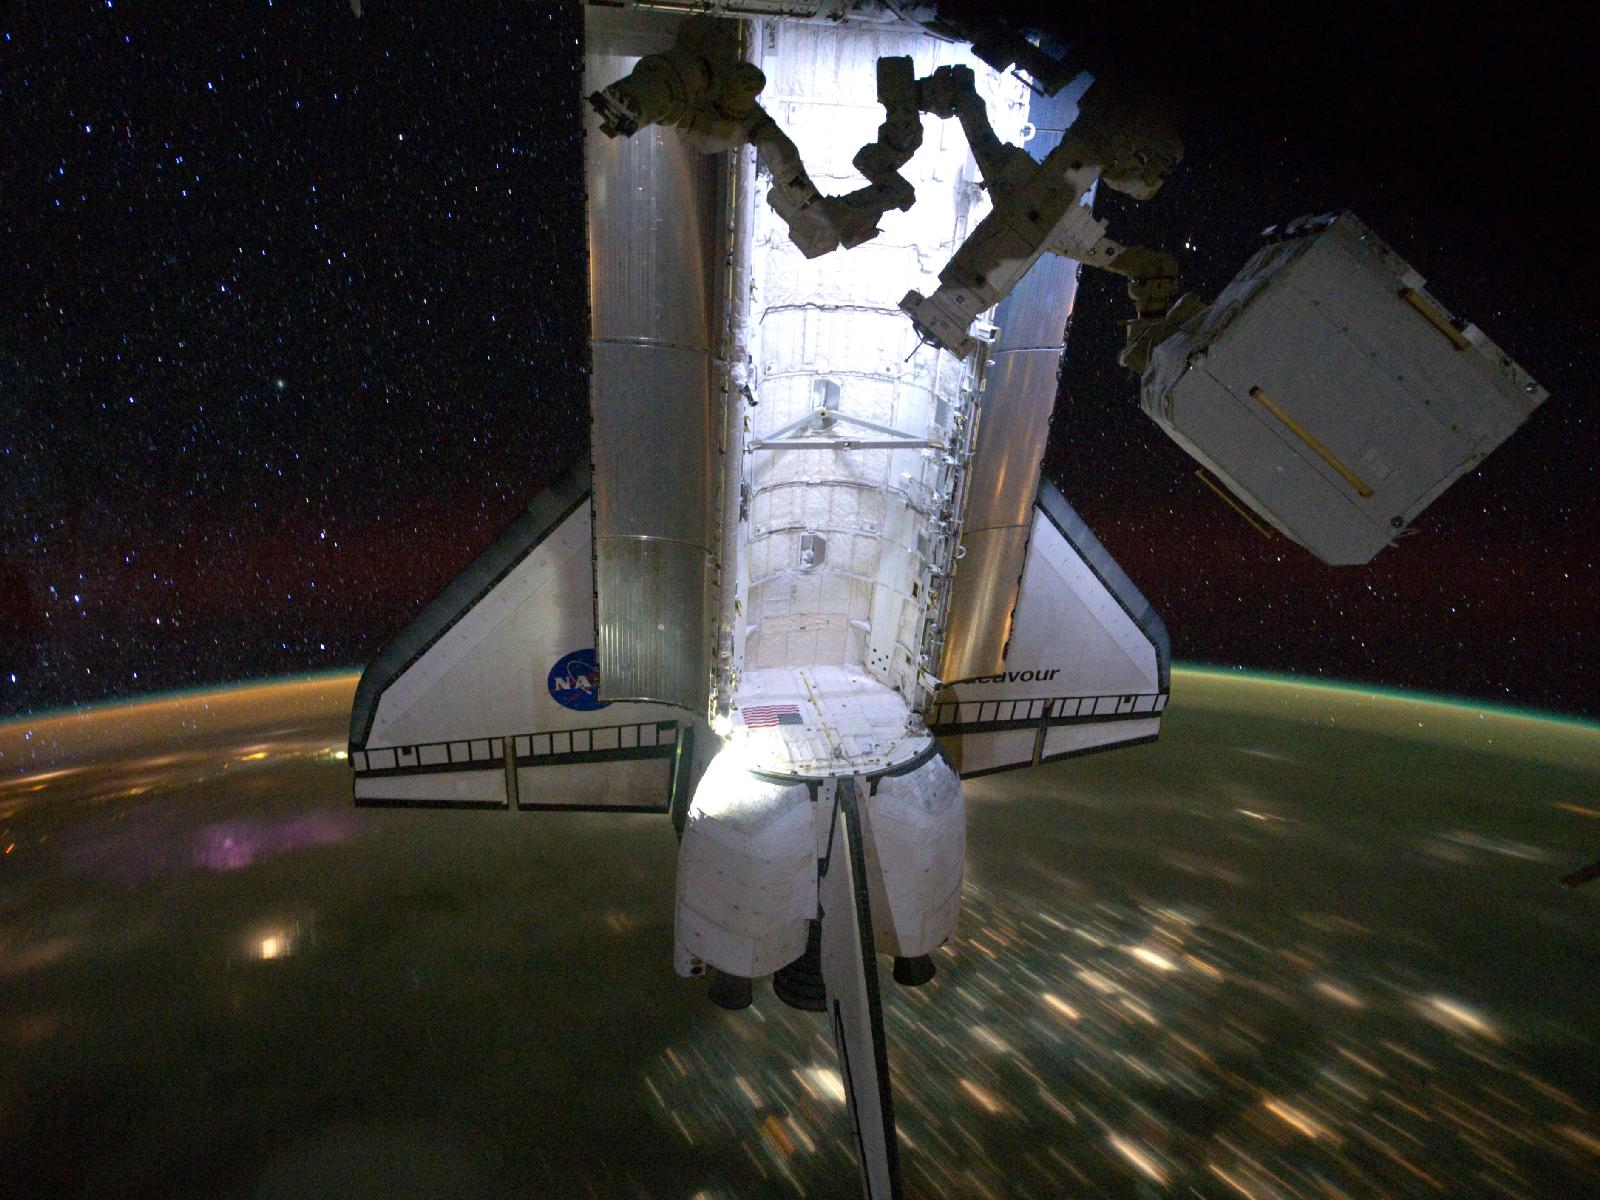 Shuttle Endeavour Over Earth at Night